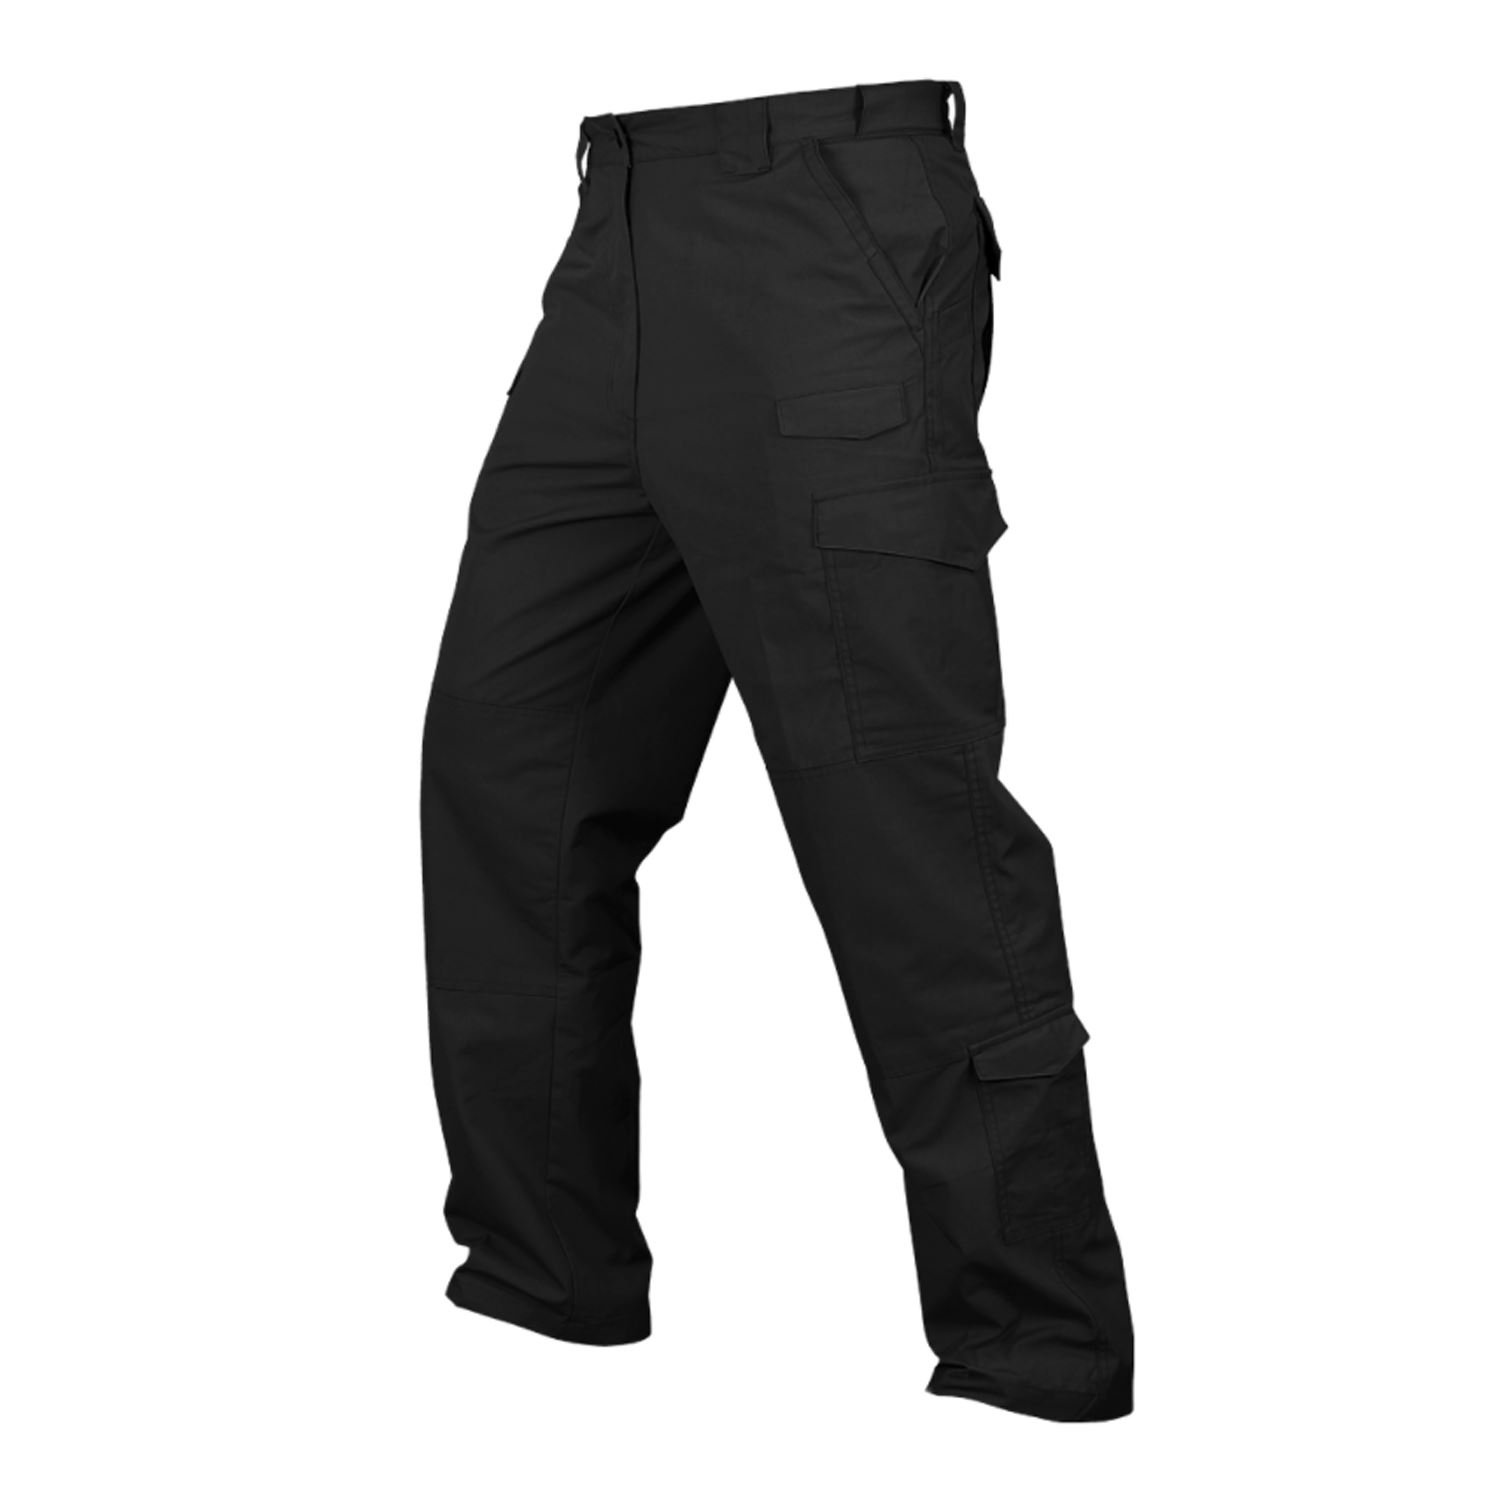 Condor Outdoor Lightweight Ripstop Pant 34W x 32L Black